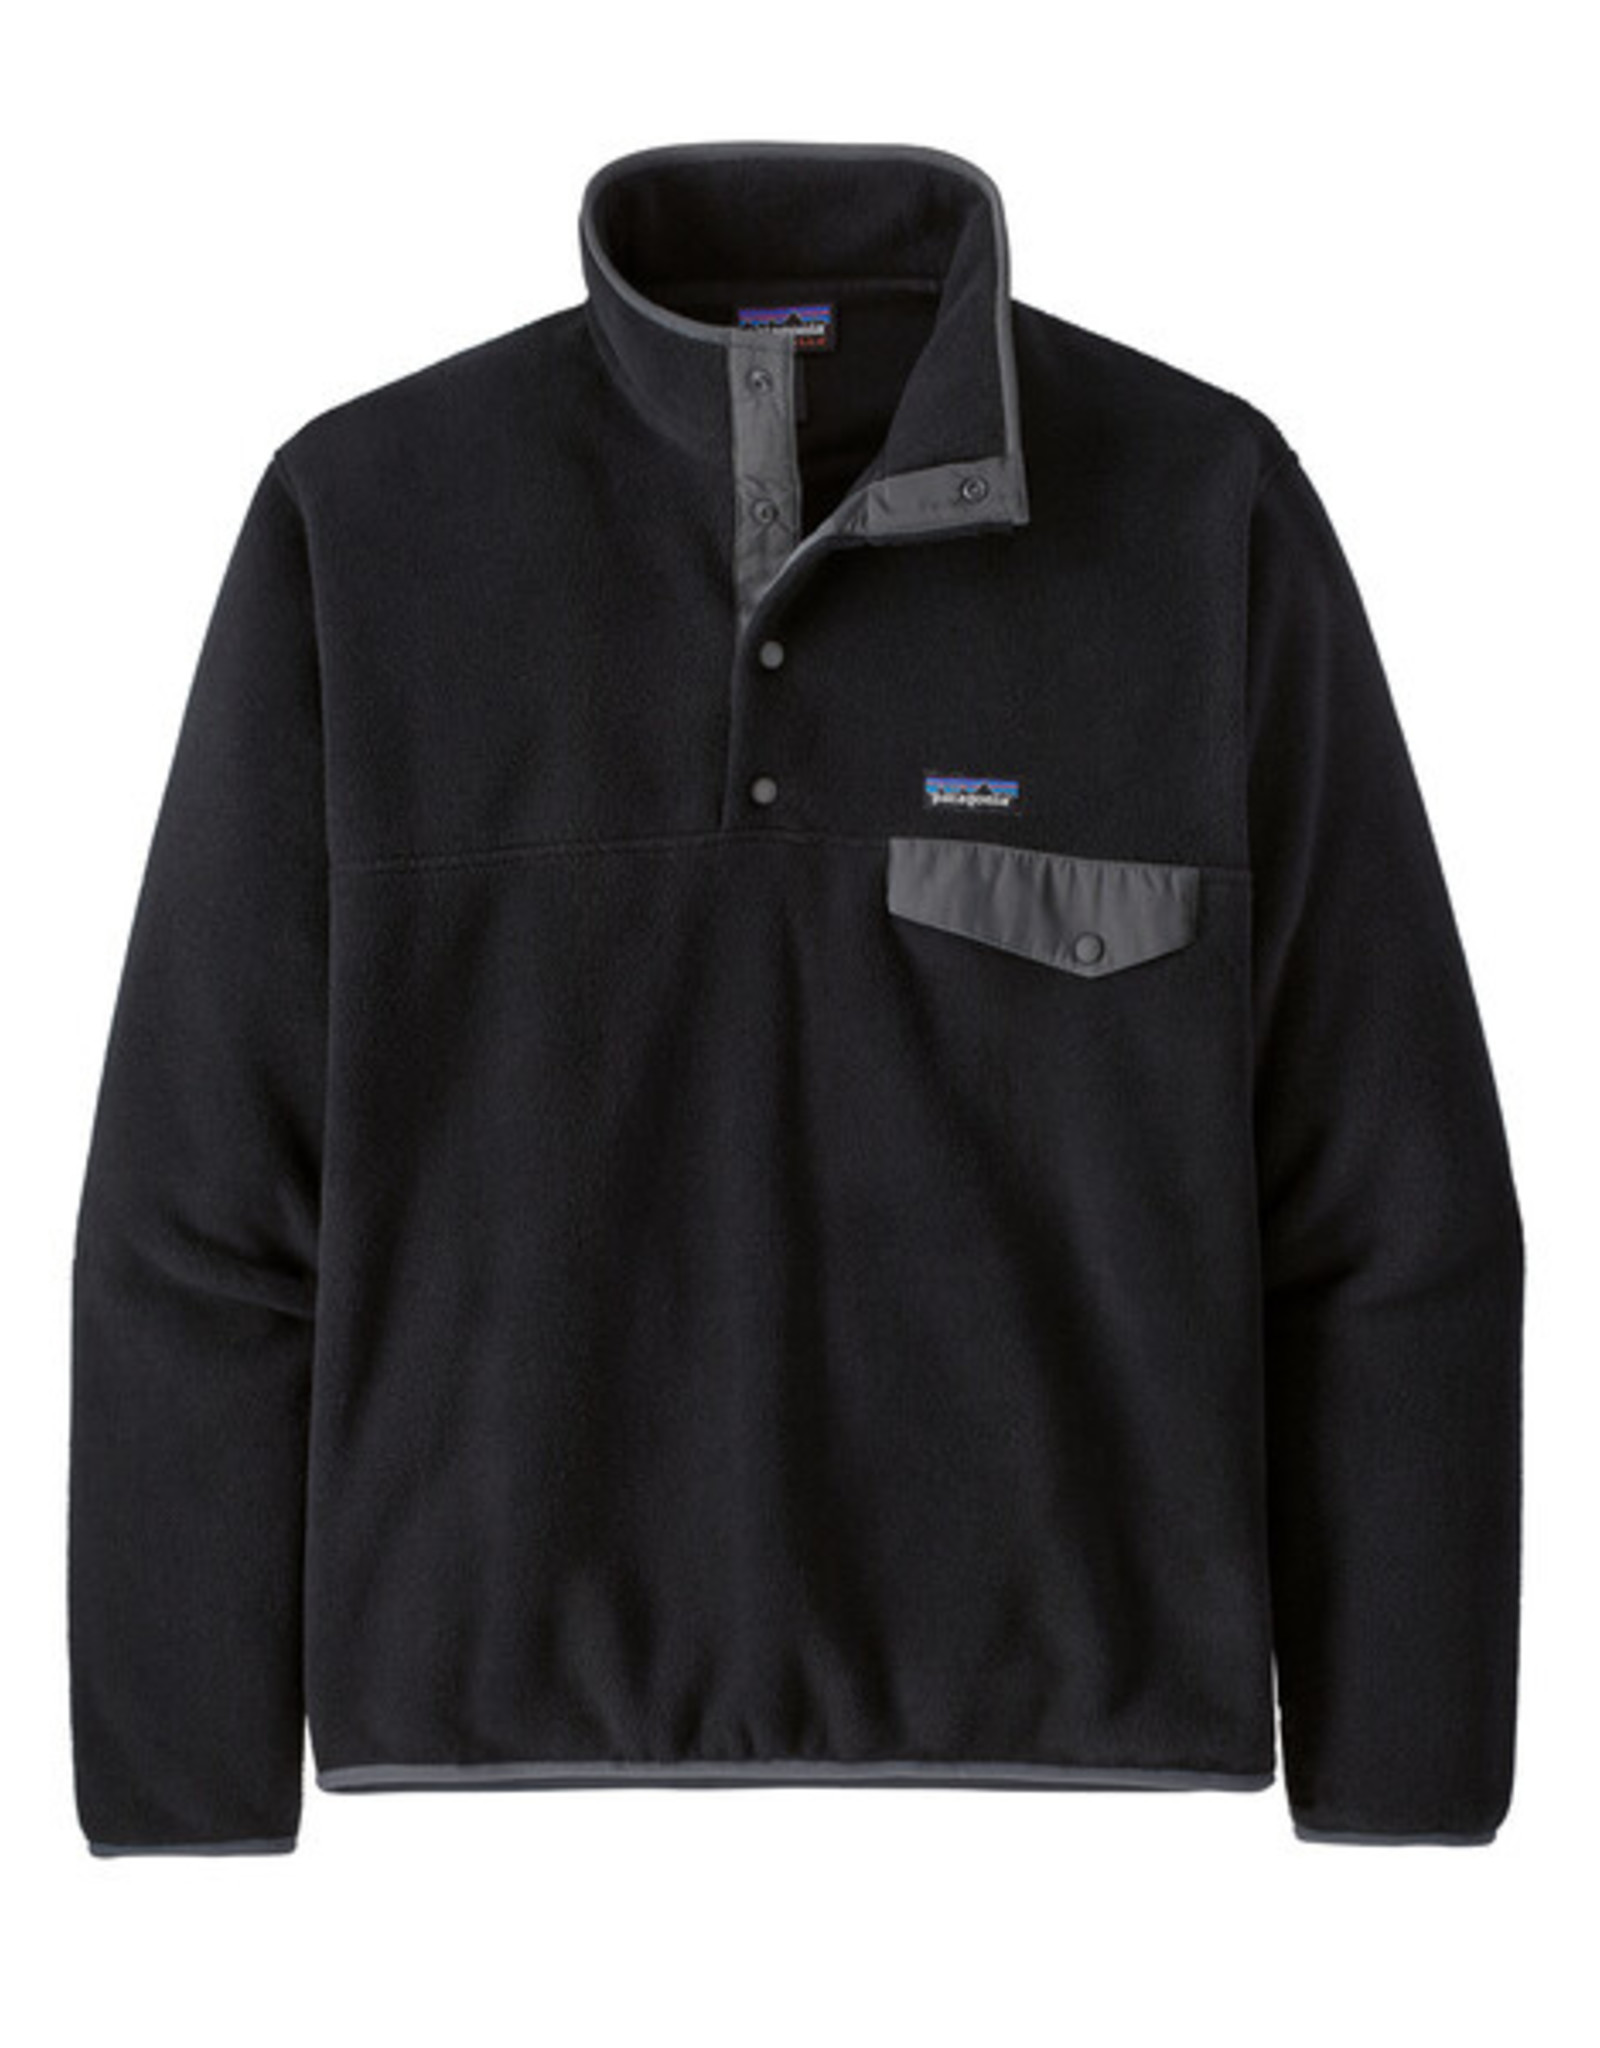 Patagonia - M's LW Synch Snap-T -  Black / Forge Grey